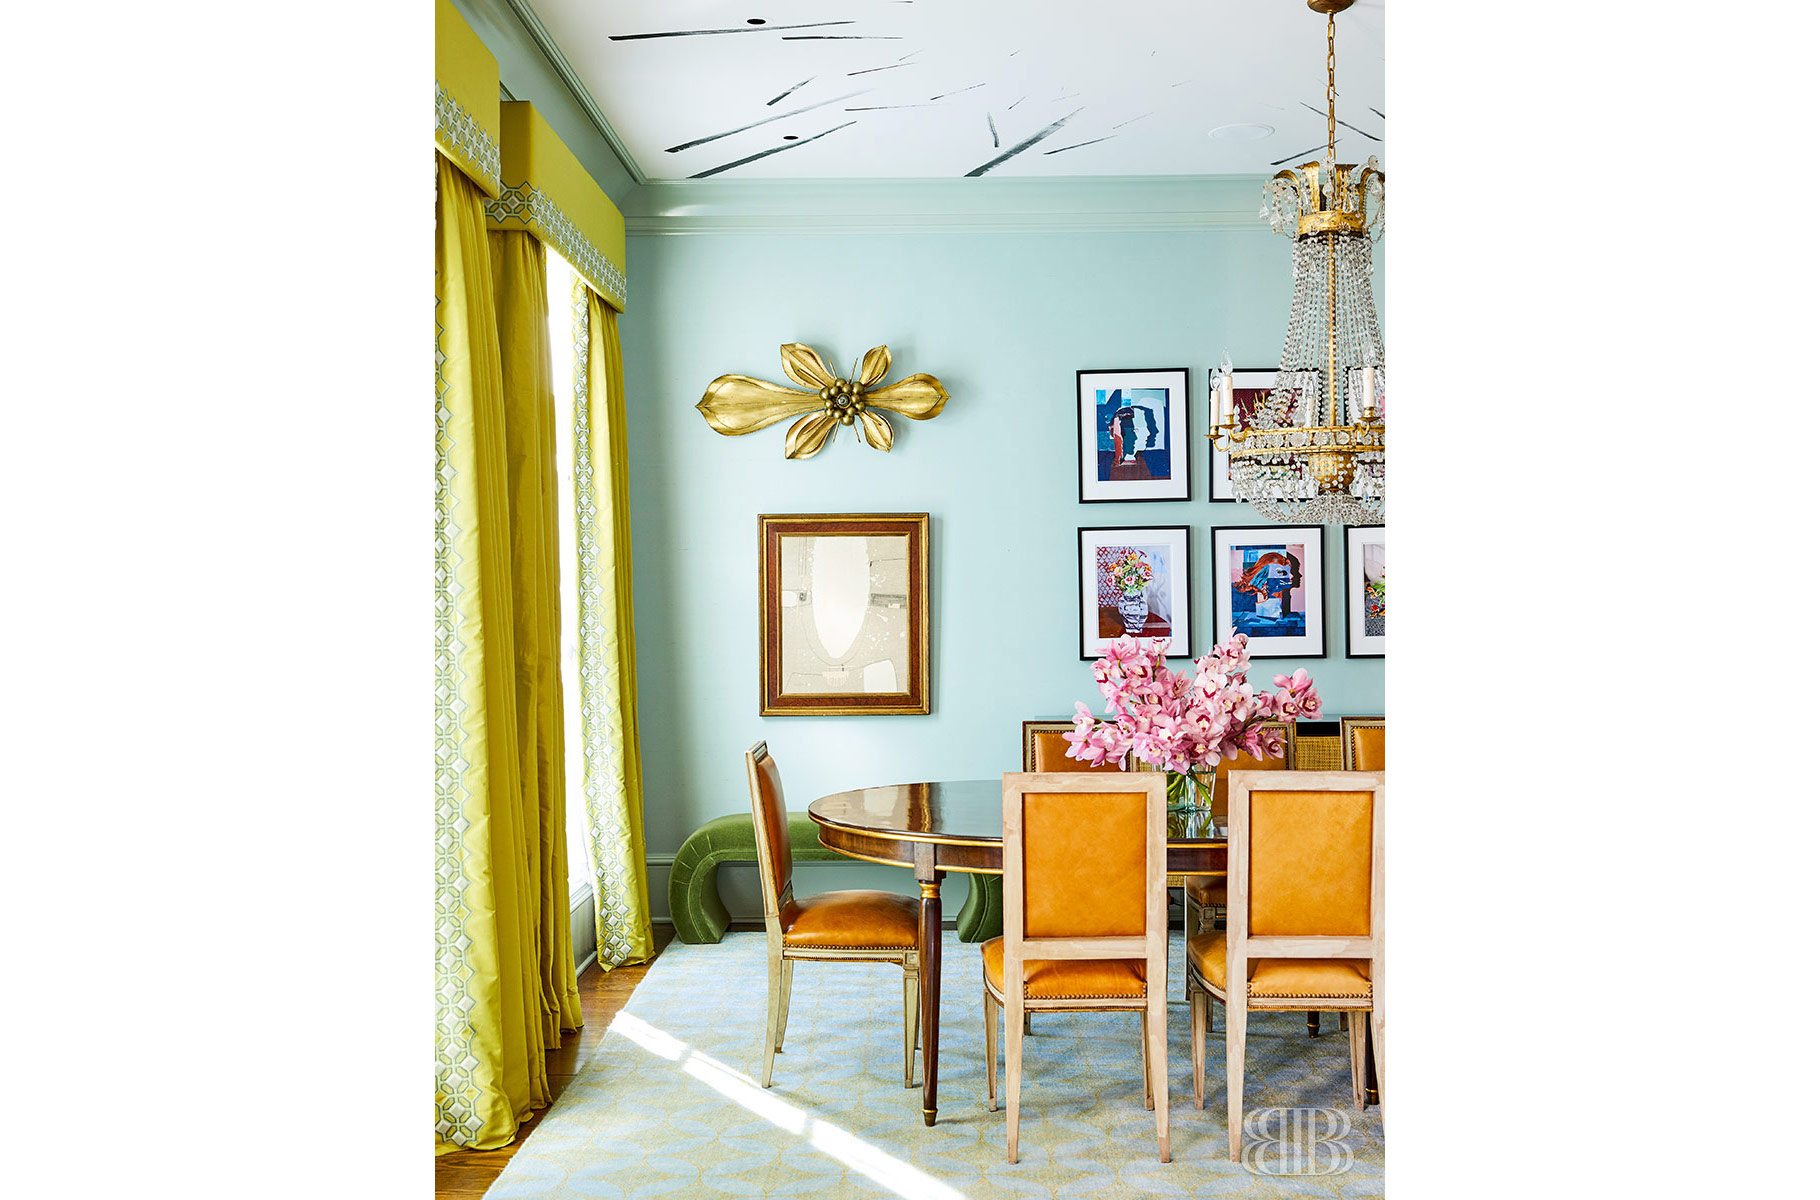 Barrie Benson - Projects - Art In the Fast Lane - Slide 6 - © Copyright Barrie Benson Interior Design. All rights reserved by Barrie Benson and/or the respective photographer.